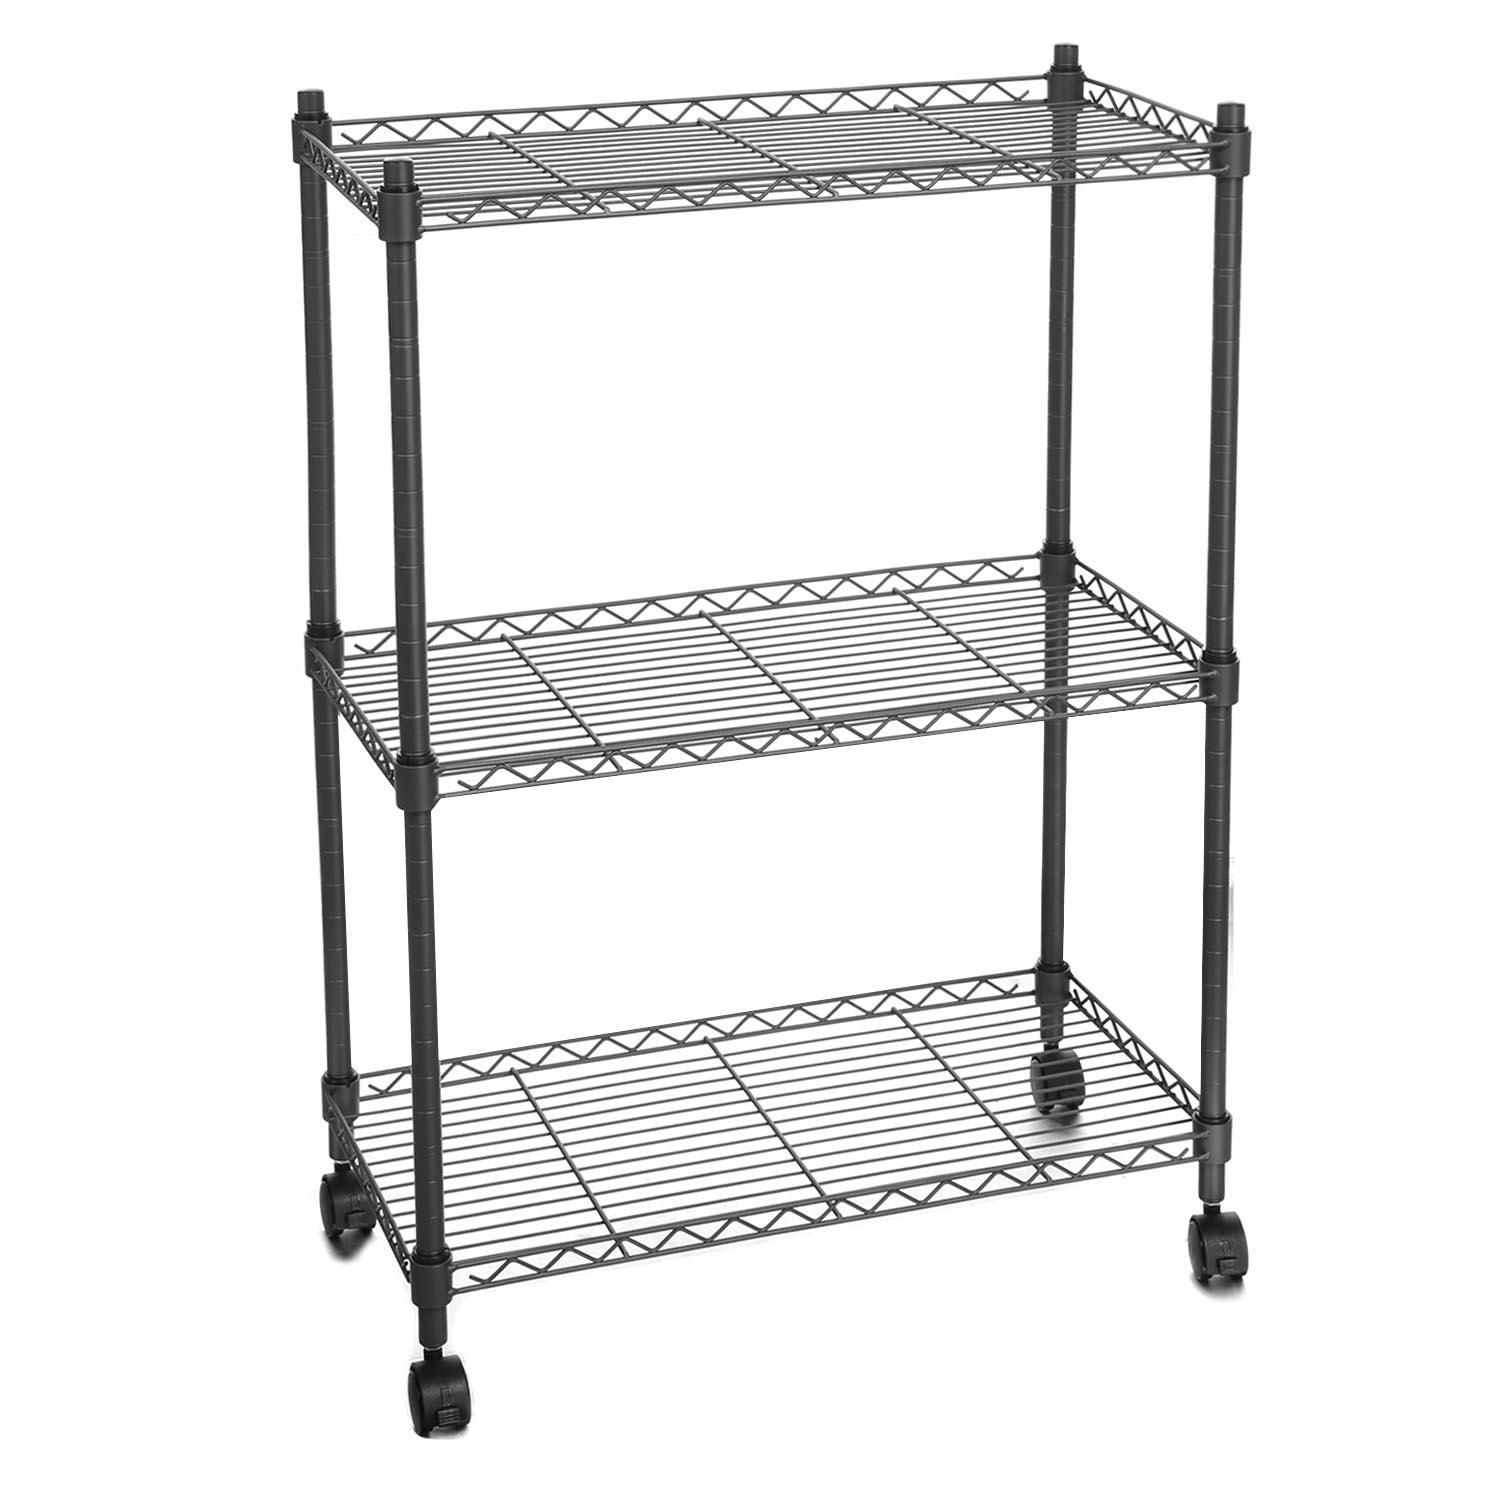 3 tier cart with wheels modern utility hascon 3tier wire shelf shelving unit modern rolling cart rack with wheels hitc